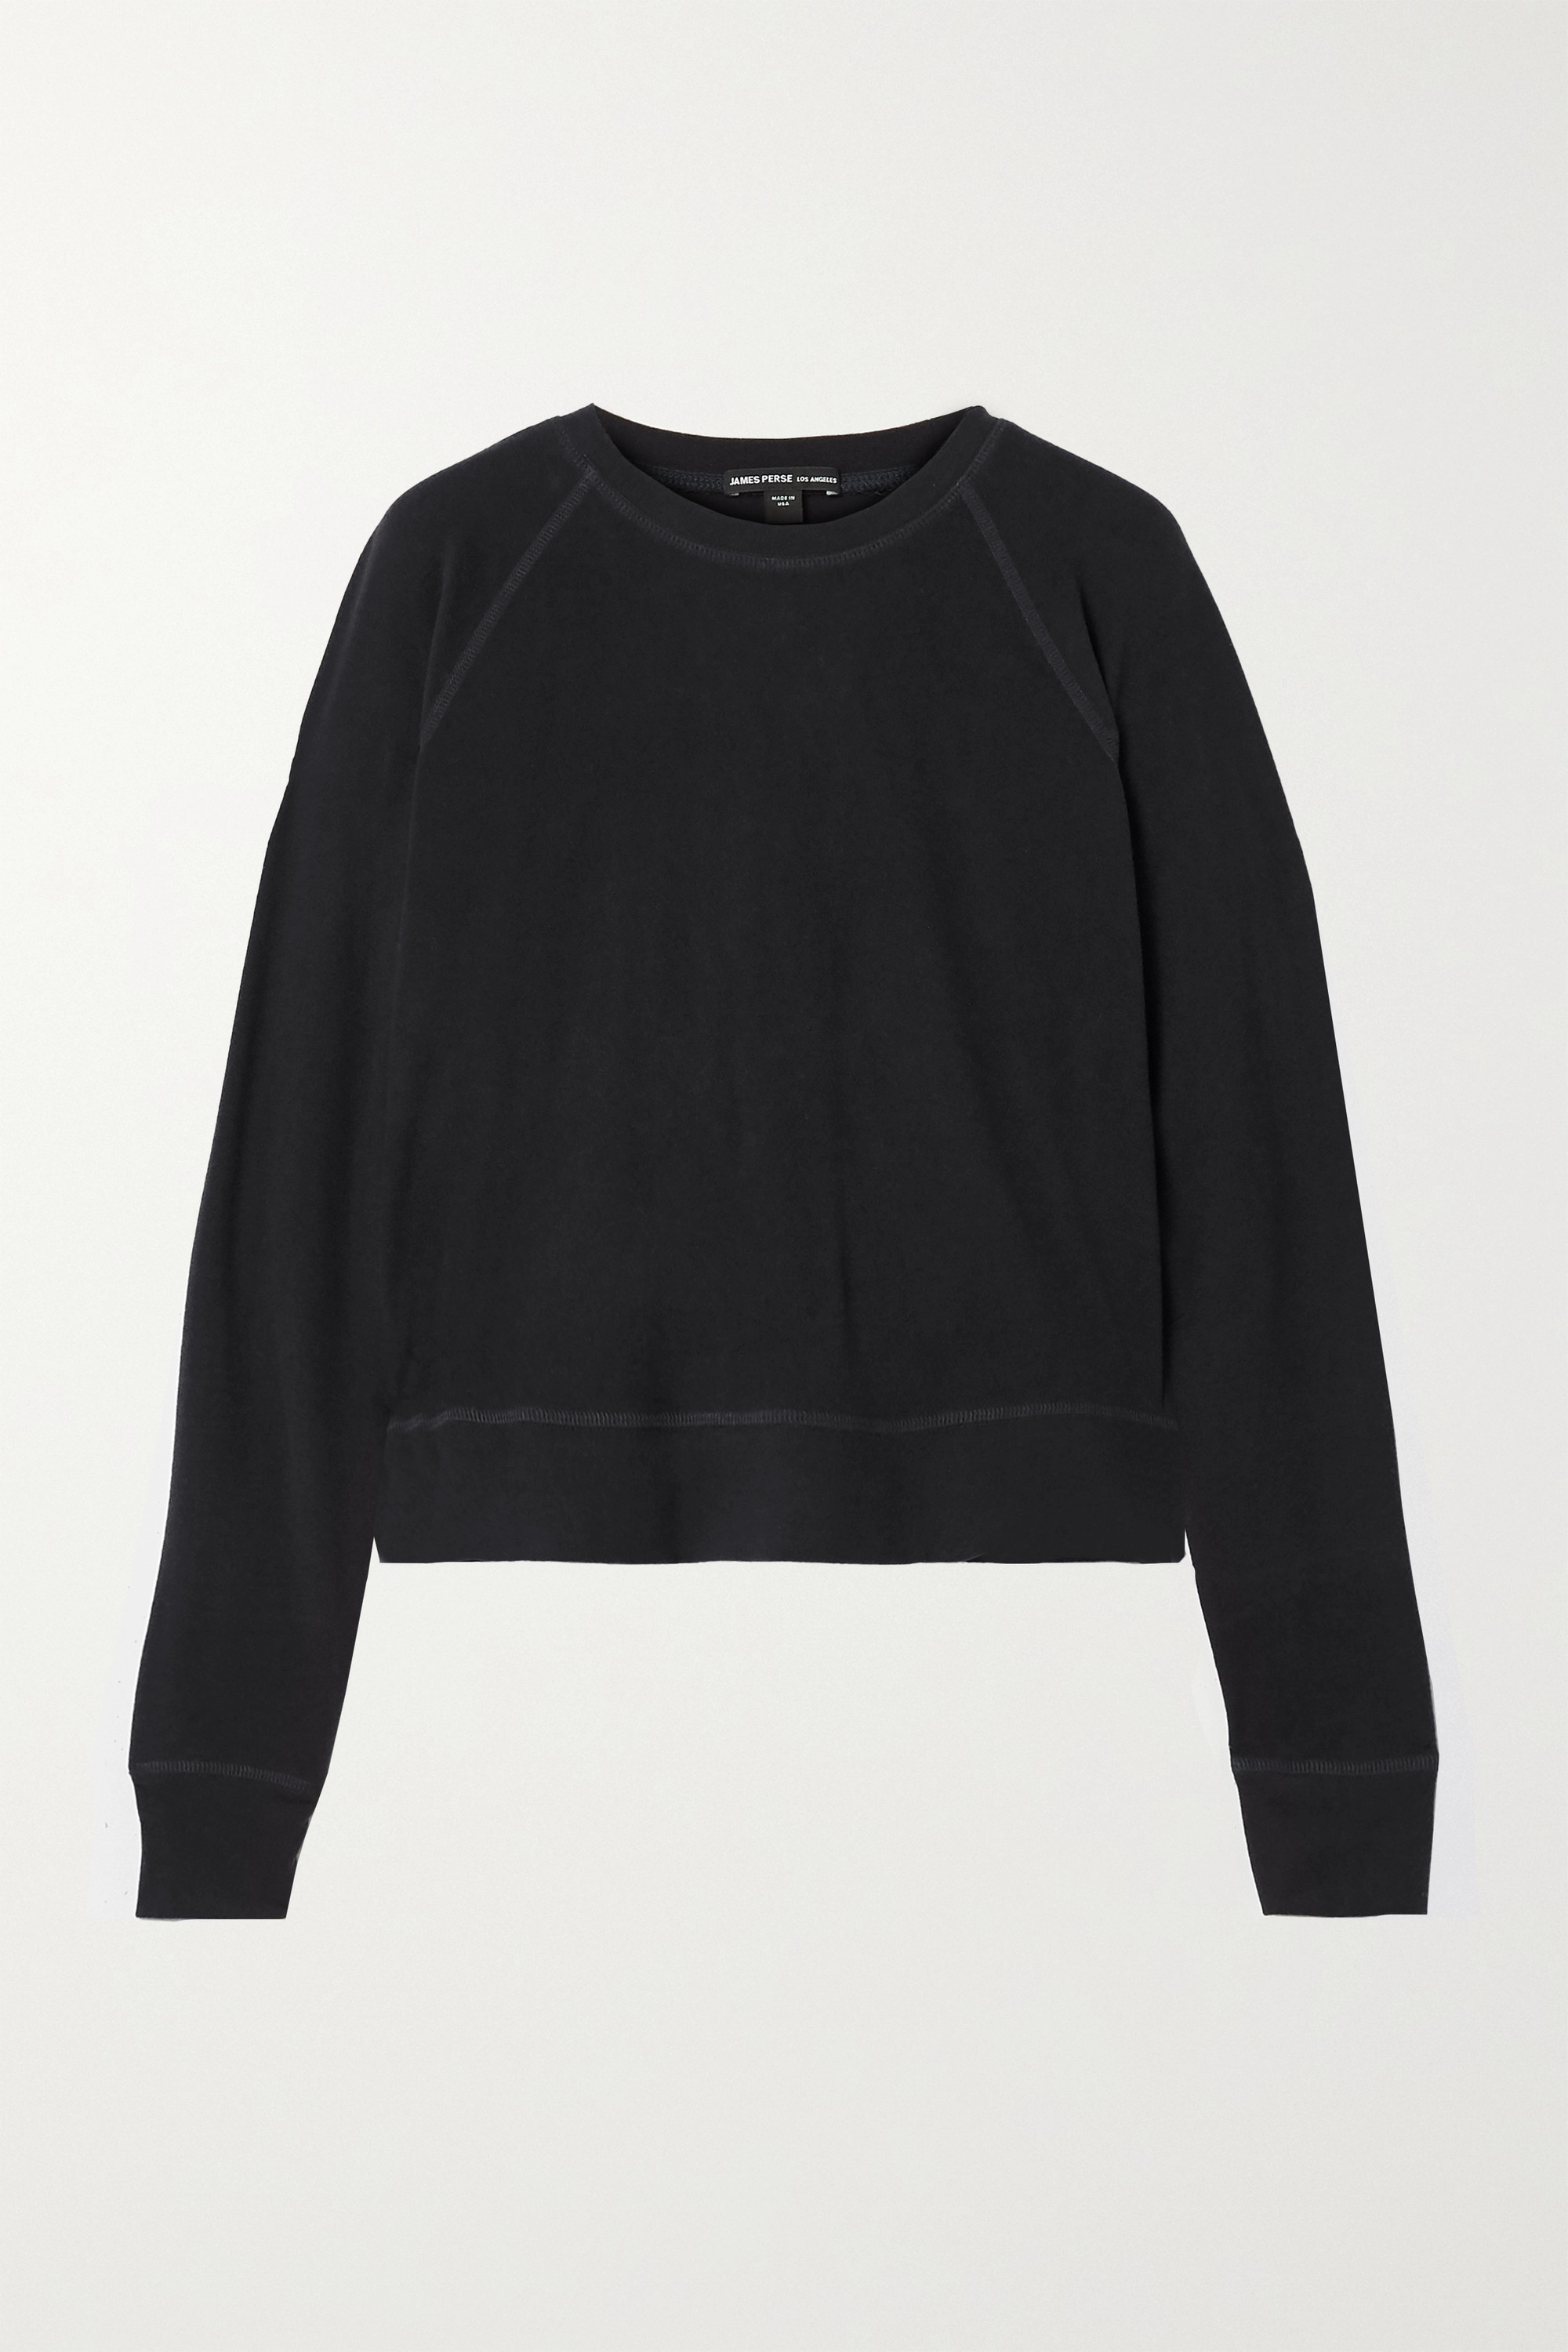 James Perse Brushed jersey top